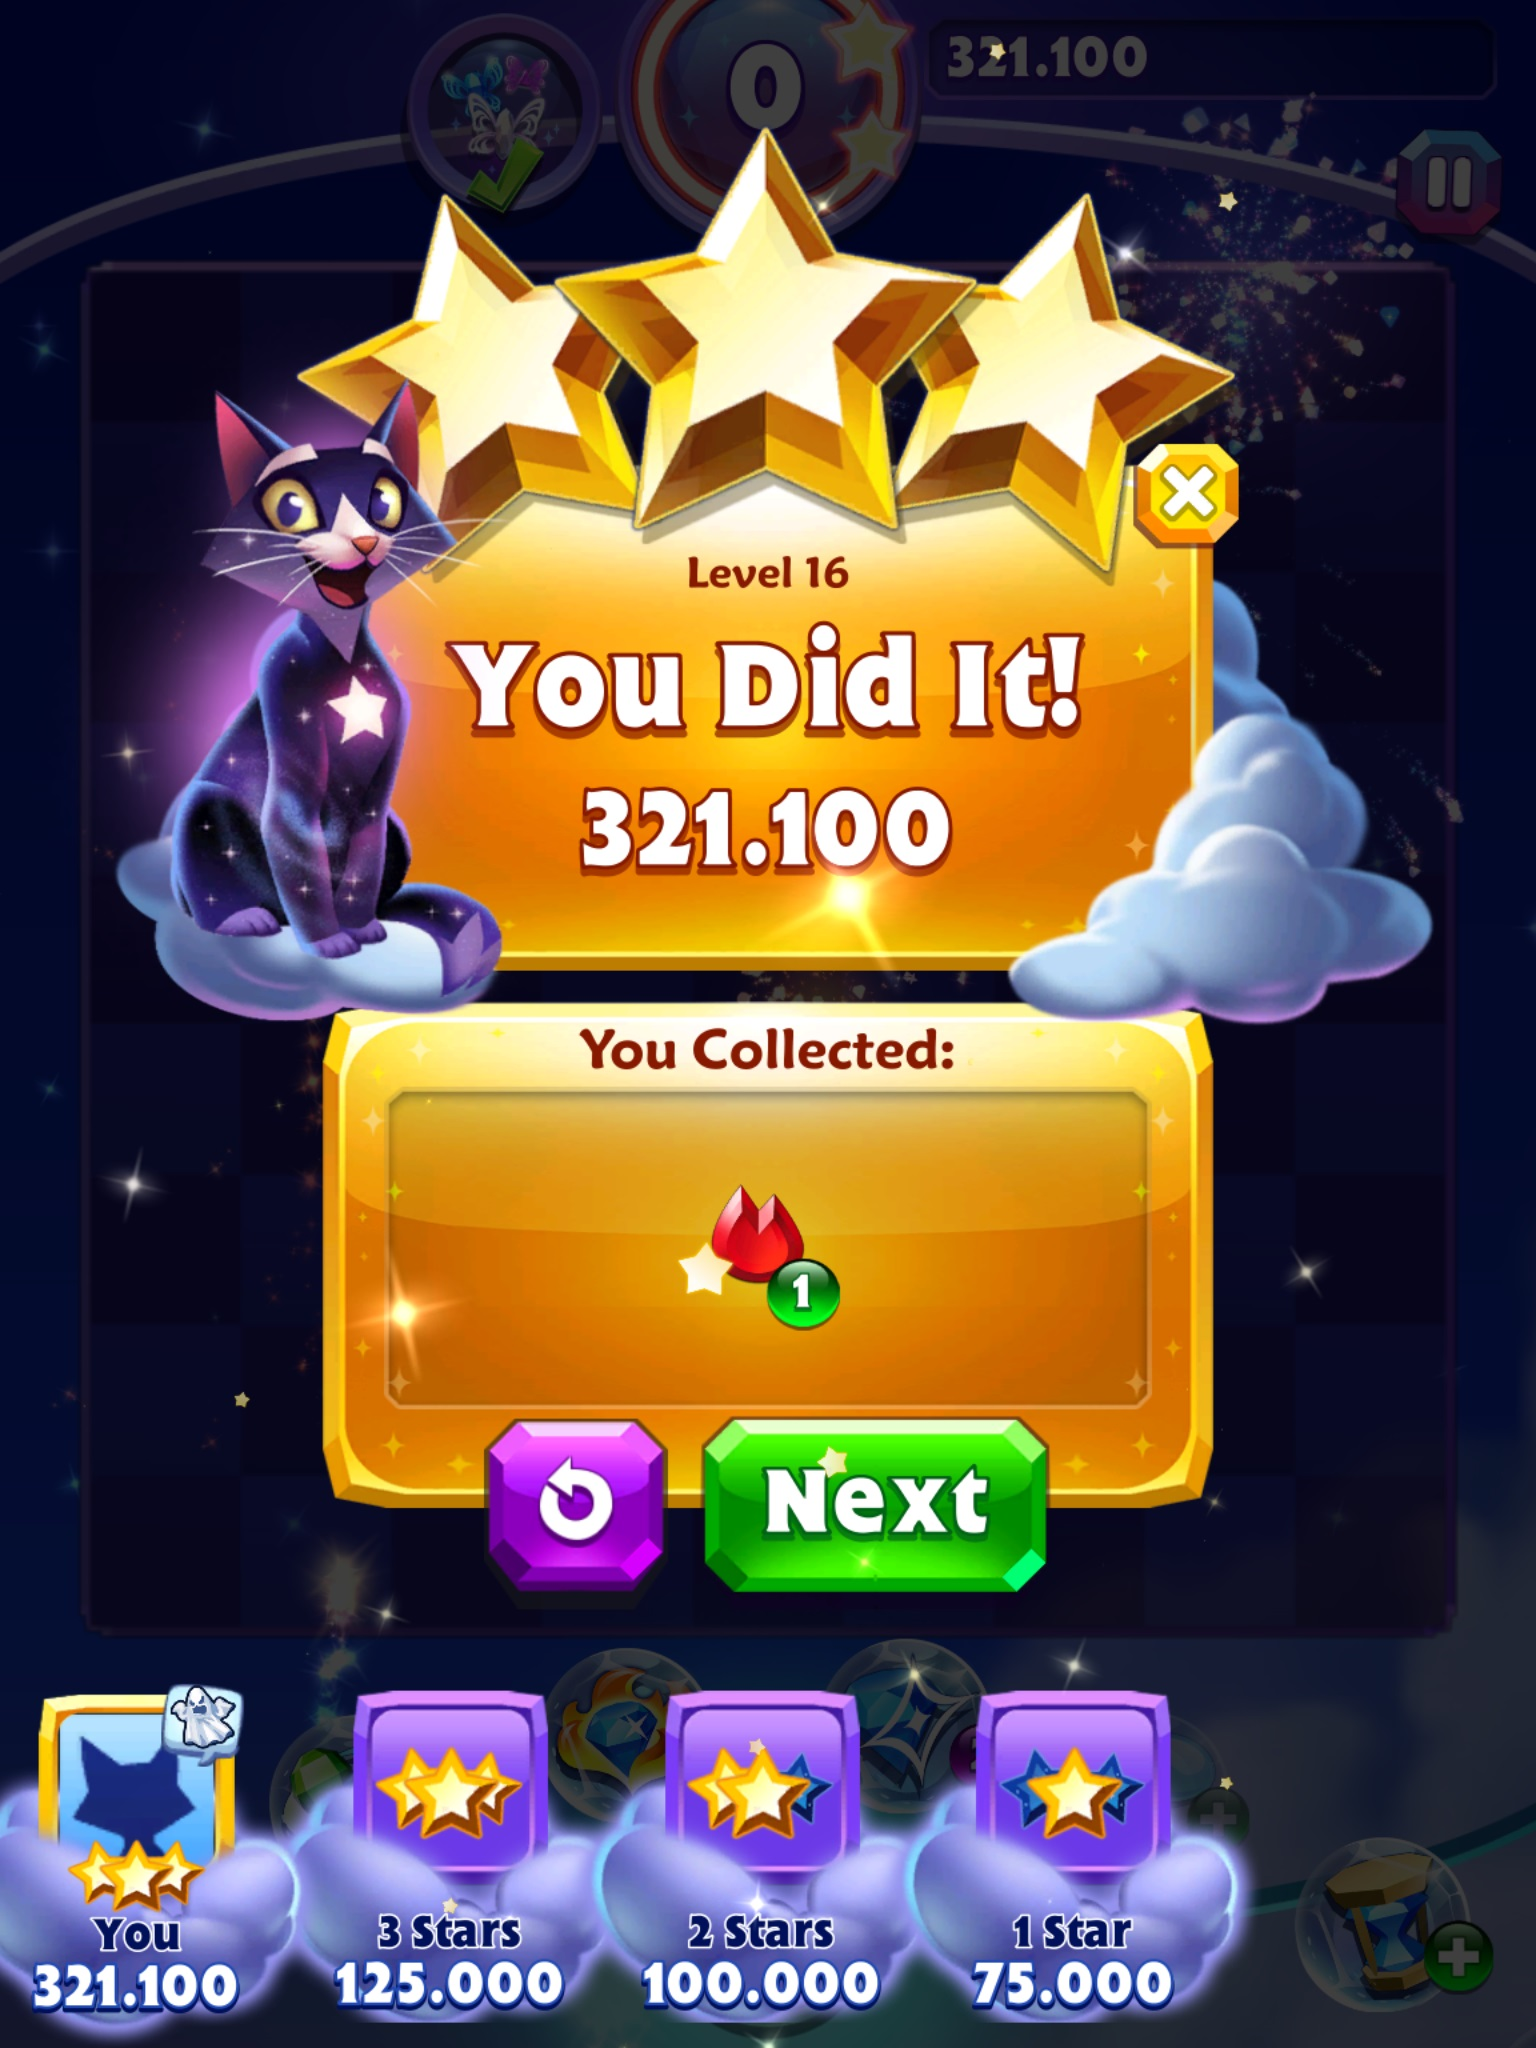 GTibel: Bejeweled Stars: Level 16 - Say Hello to My Little Friends (Android) 321,100 points on 2019-08-21 05:33:19